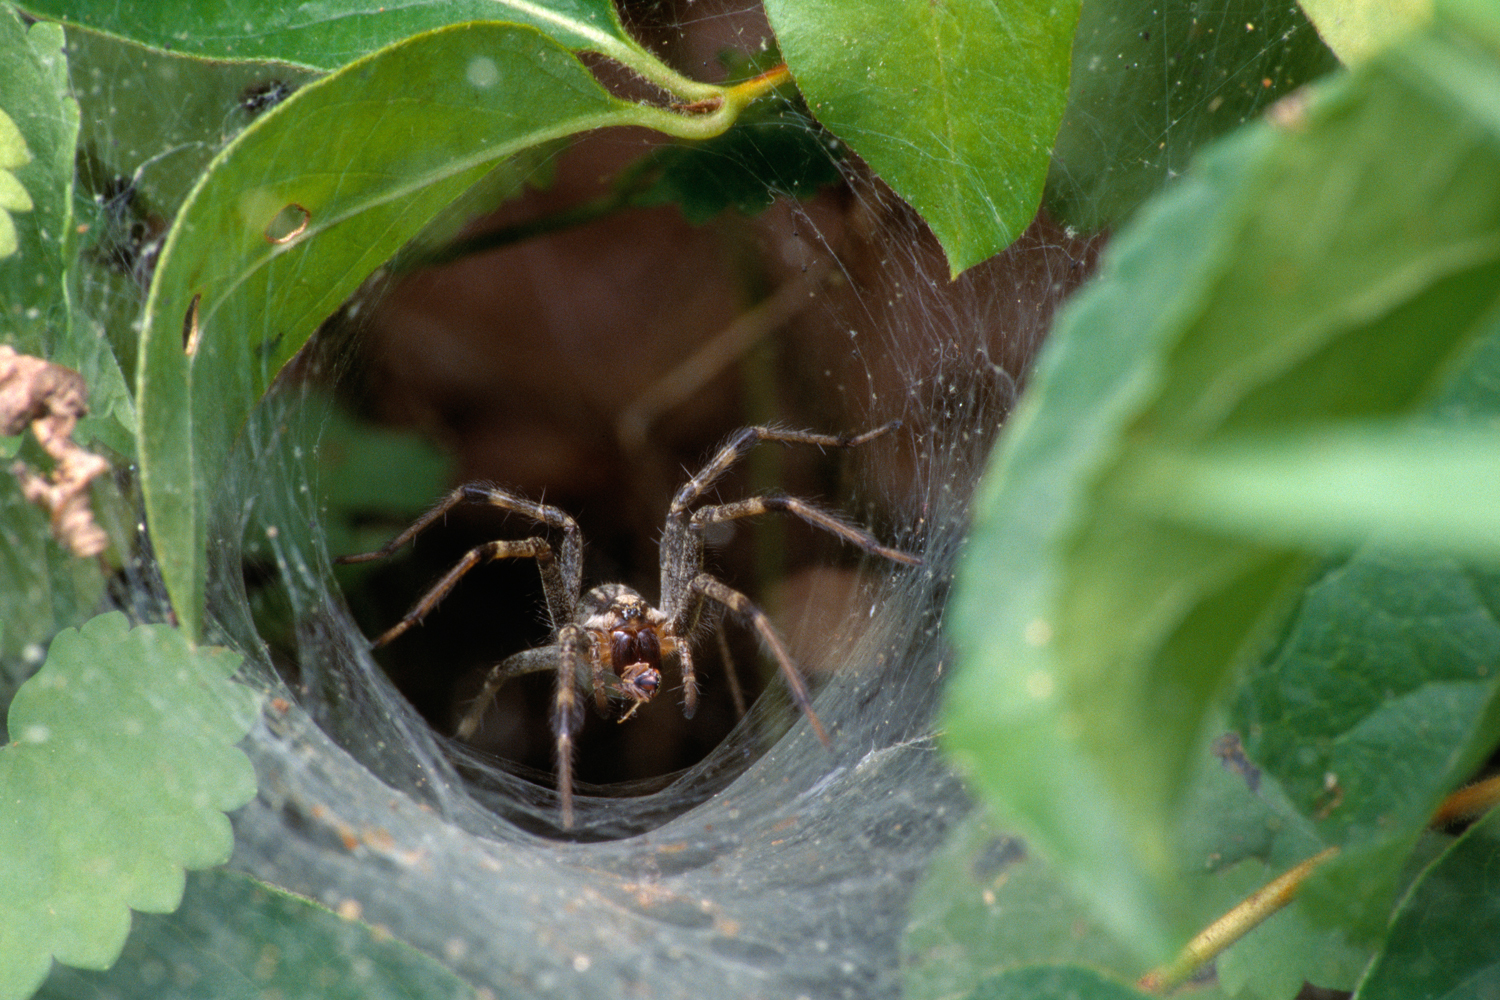 Experts warn: Beware of funnel-web spiders in this rain ...